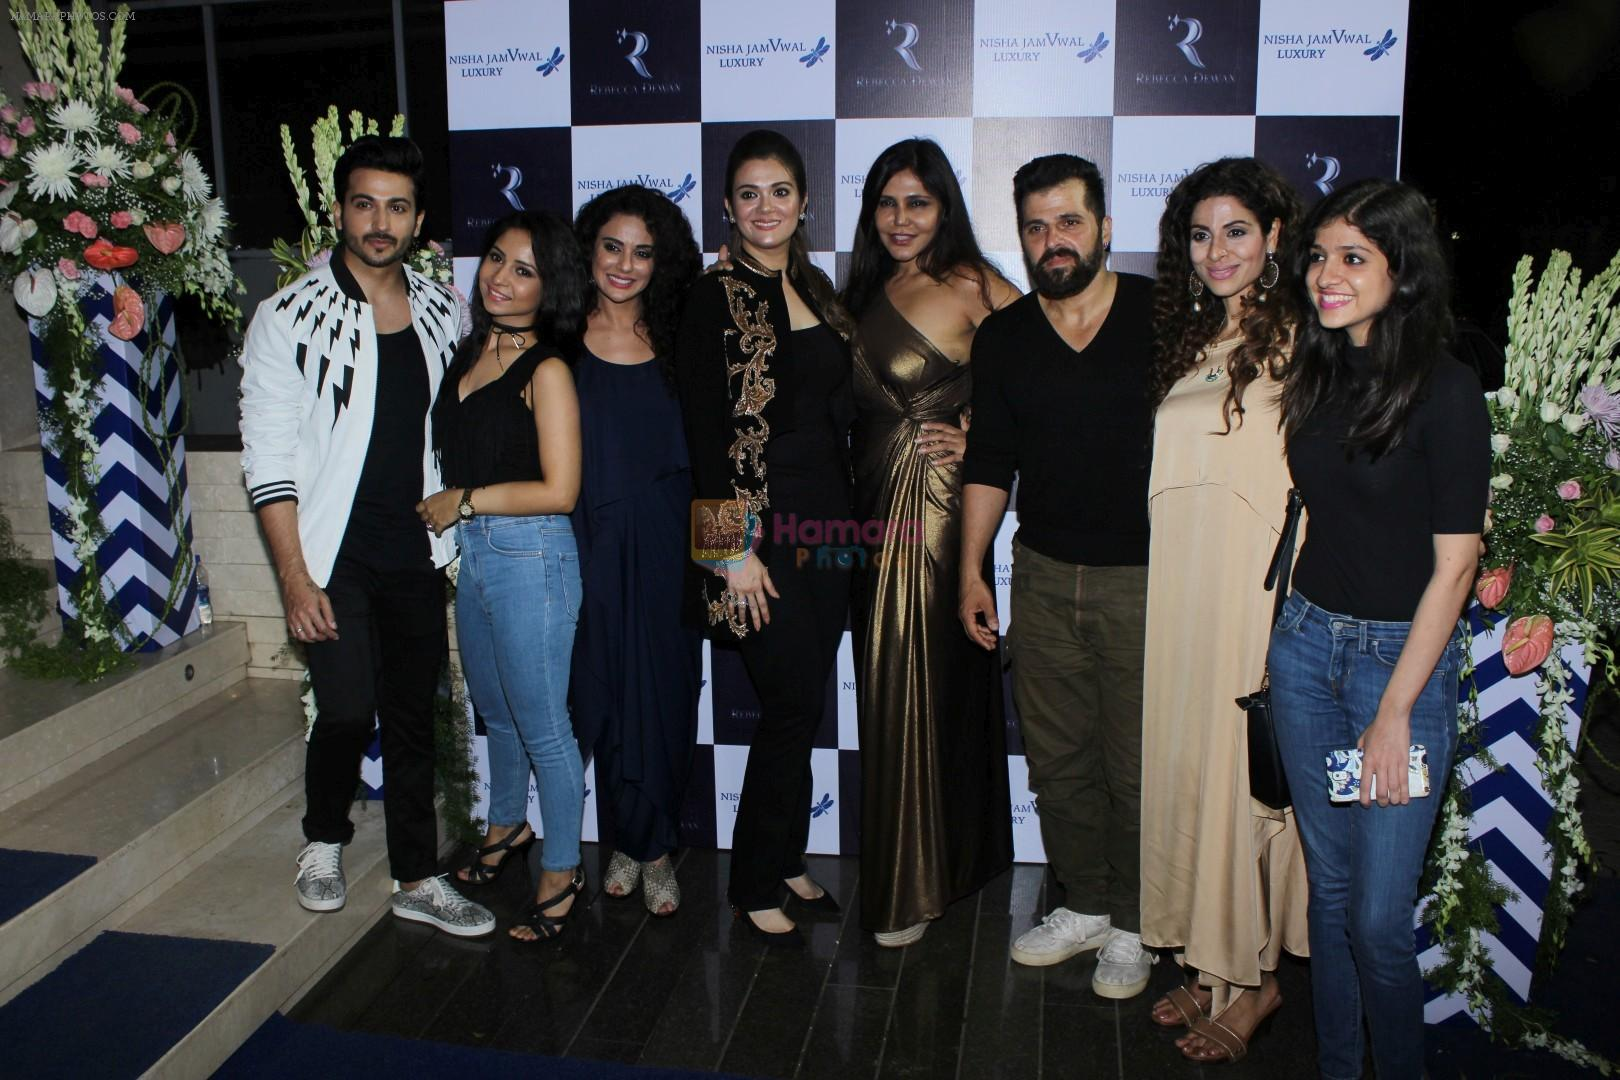 Tanaaz Irani, Bhaktiyar Irani, Nisha Jamwal, Rebecca Dewan at Bahraini Royal Fashion Store on 20th June 2017